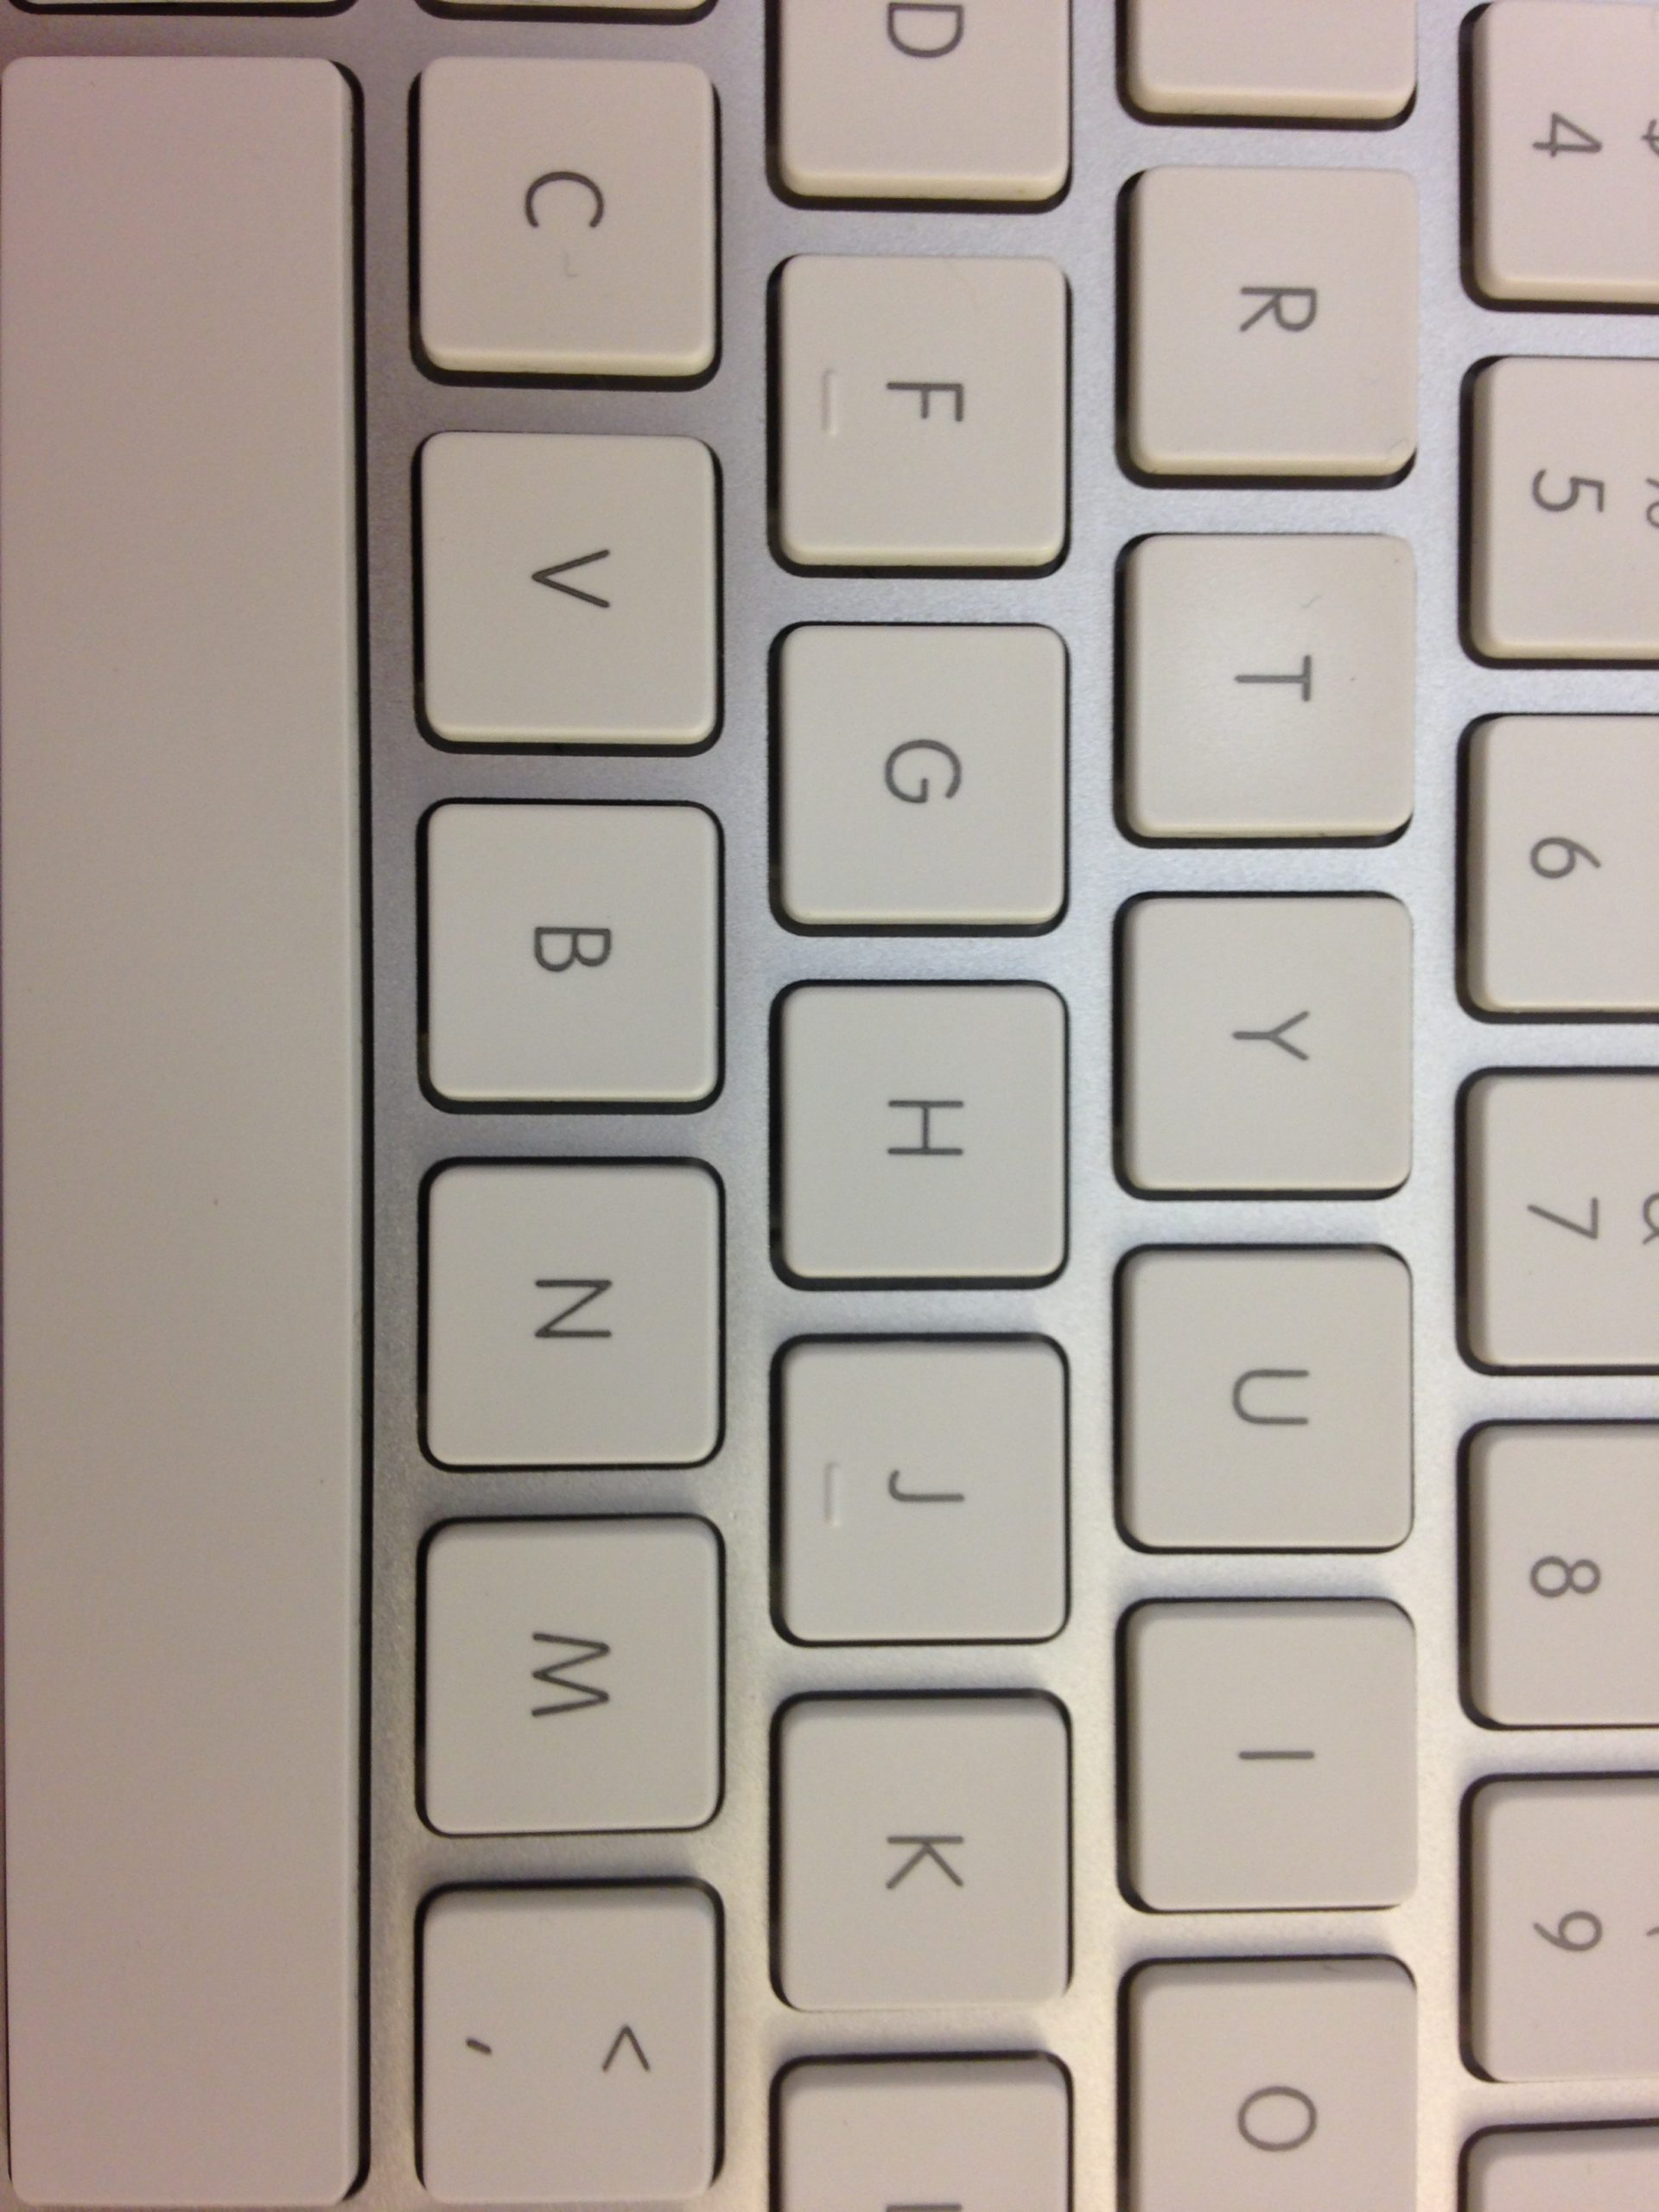 Clean Apple Keyboard After Computer Cleaning Service